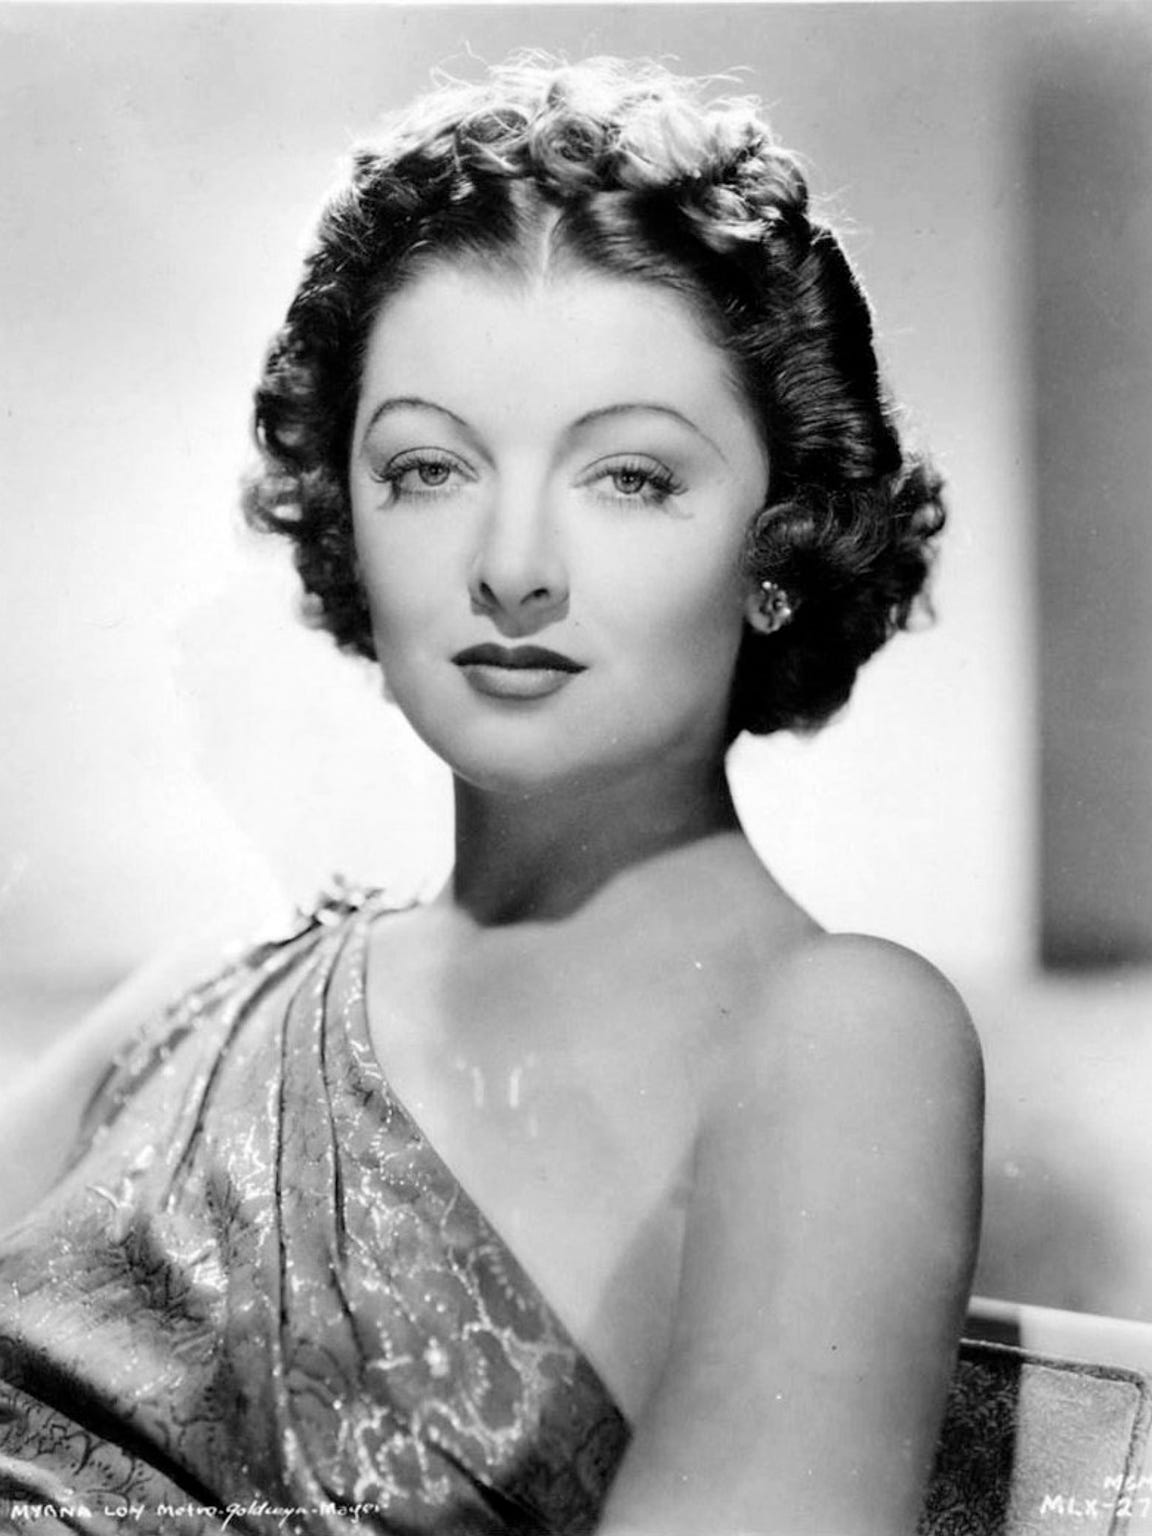 Myrna Loy in a studio publicity photo.